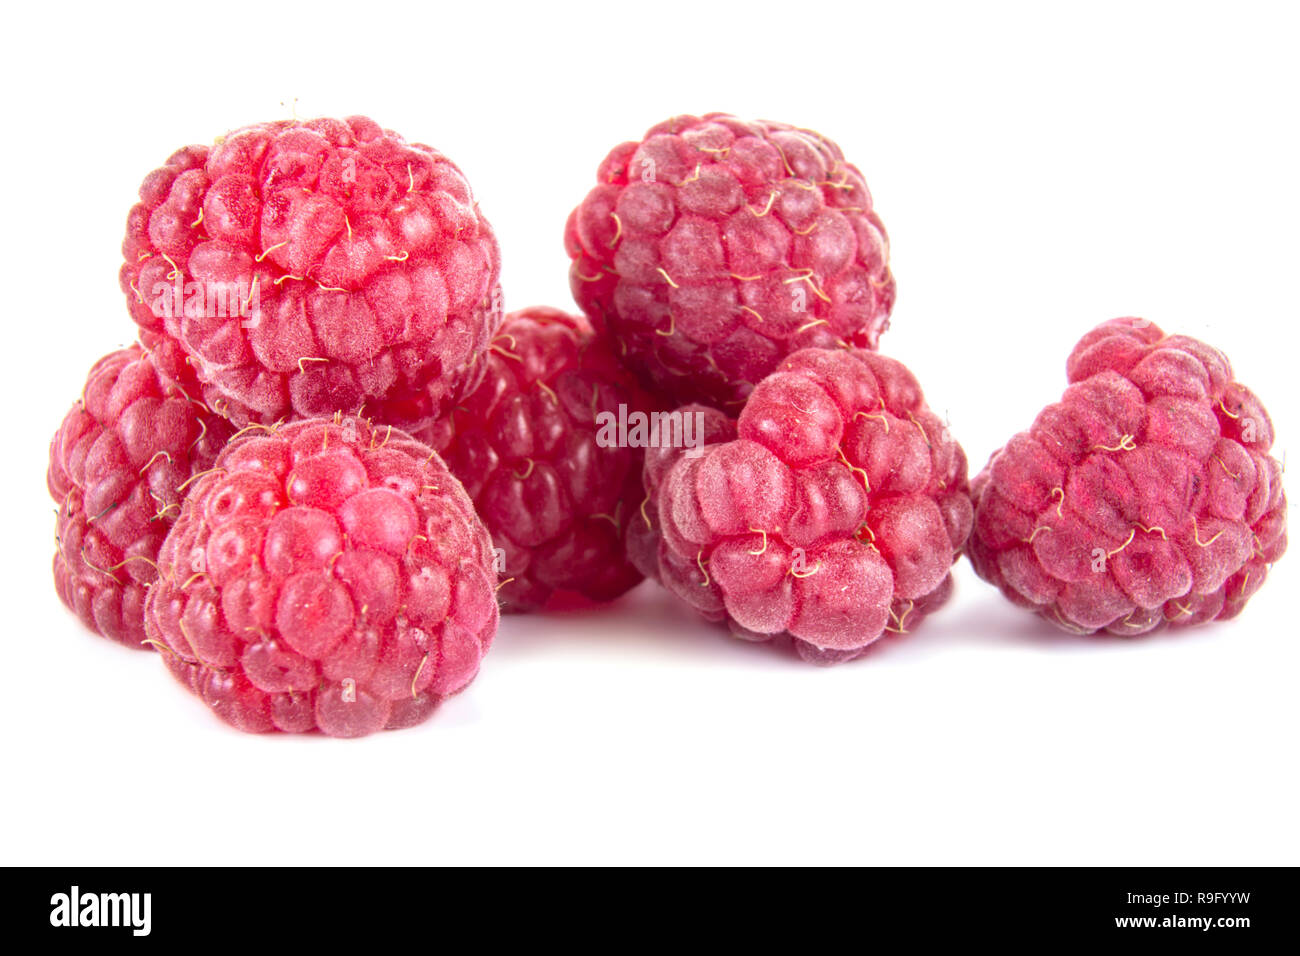 Ripe raspberry it is isolated on a white background - Stock Image